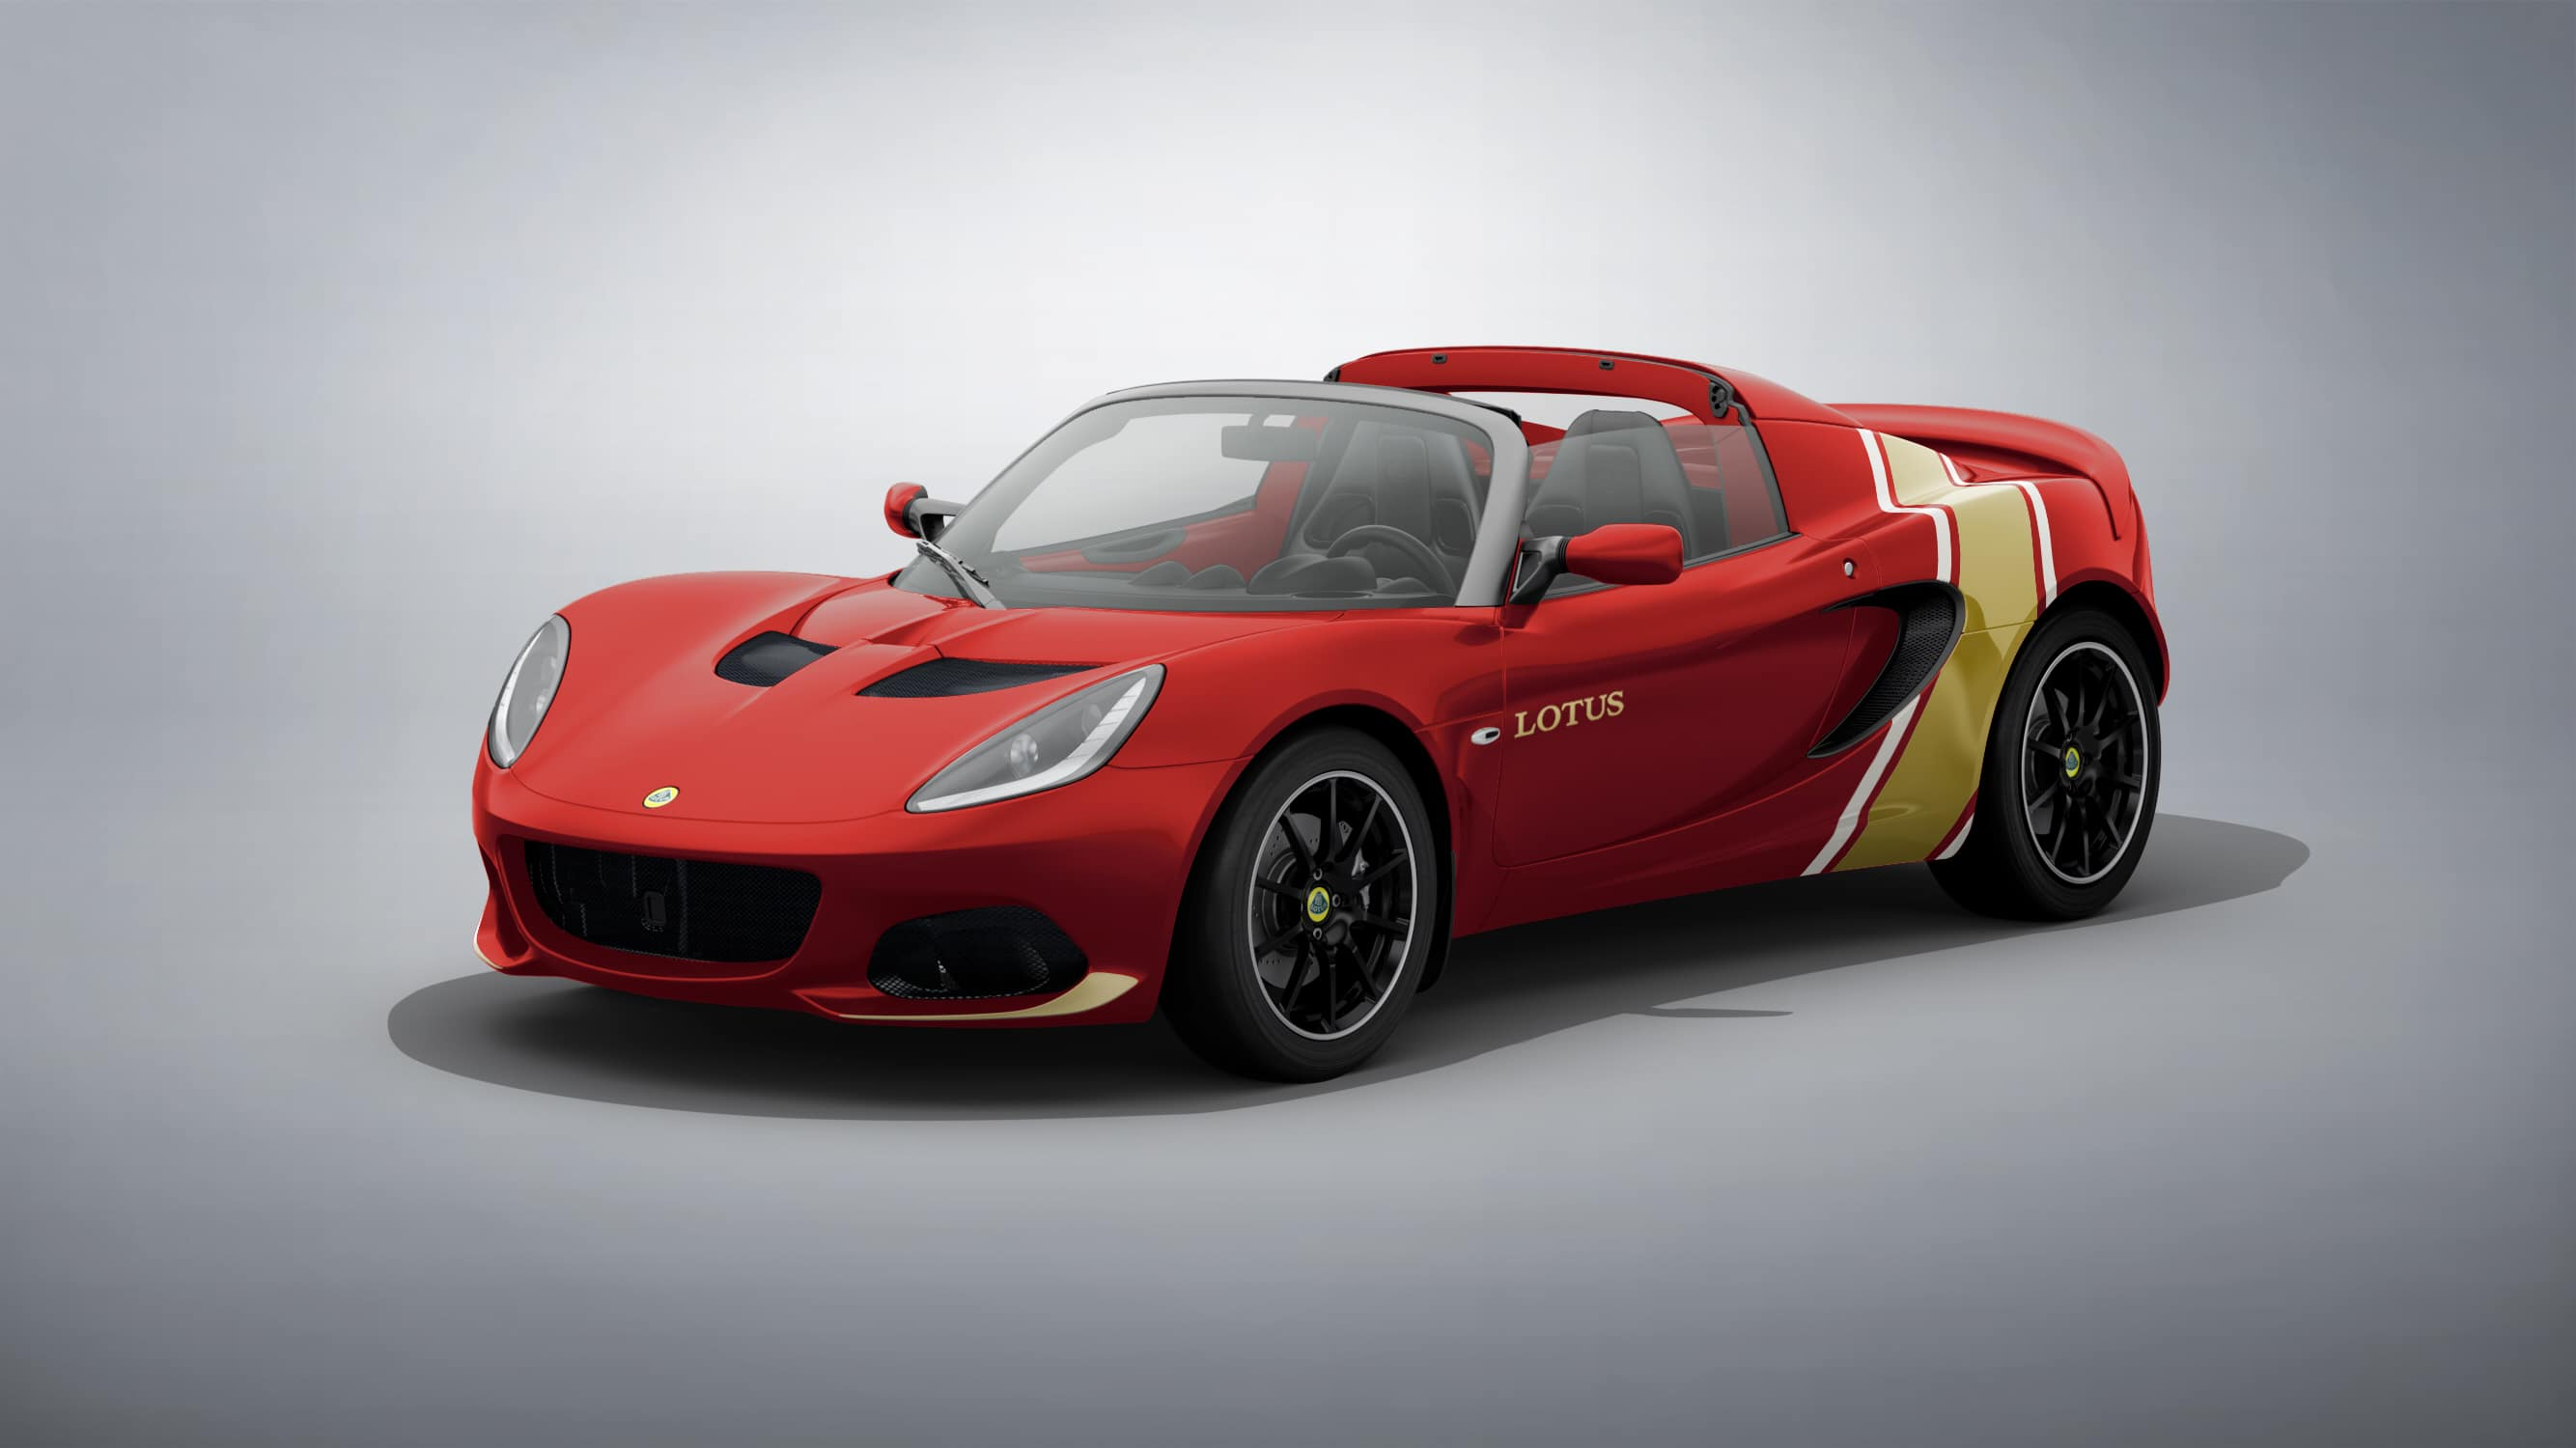 The Lotus Elise Classic Heritage Edition is very colourful